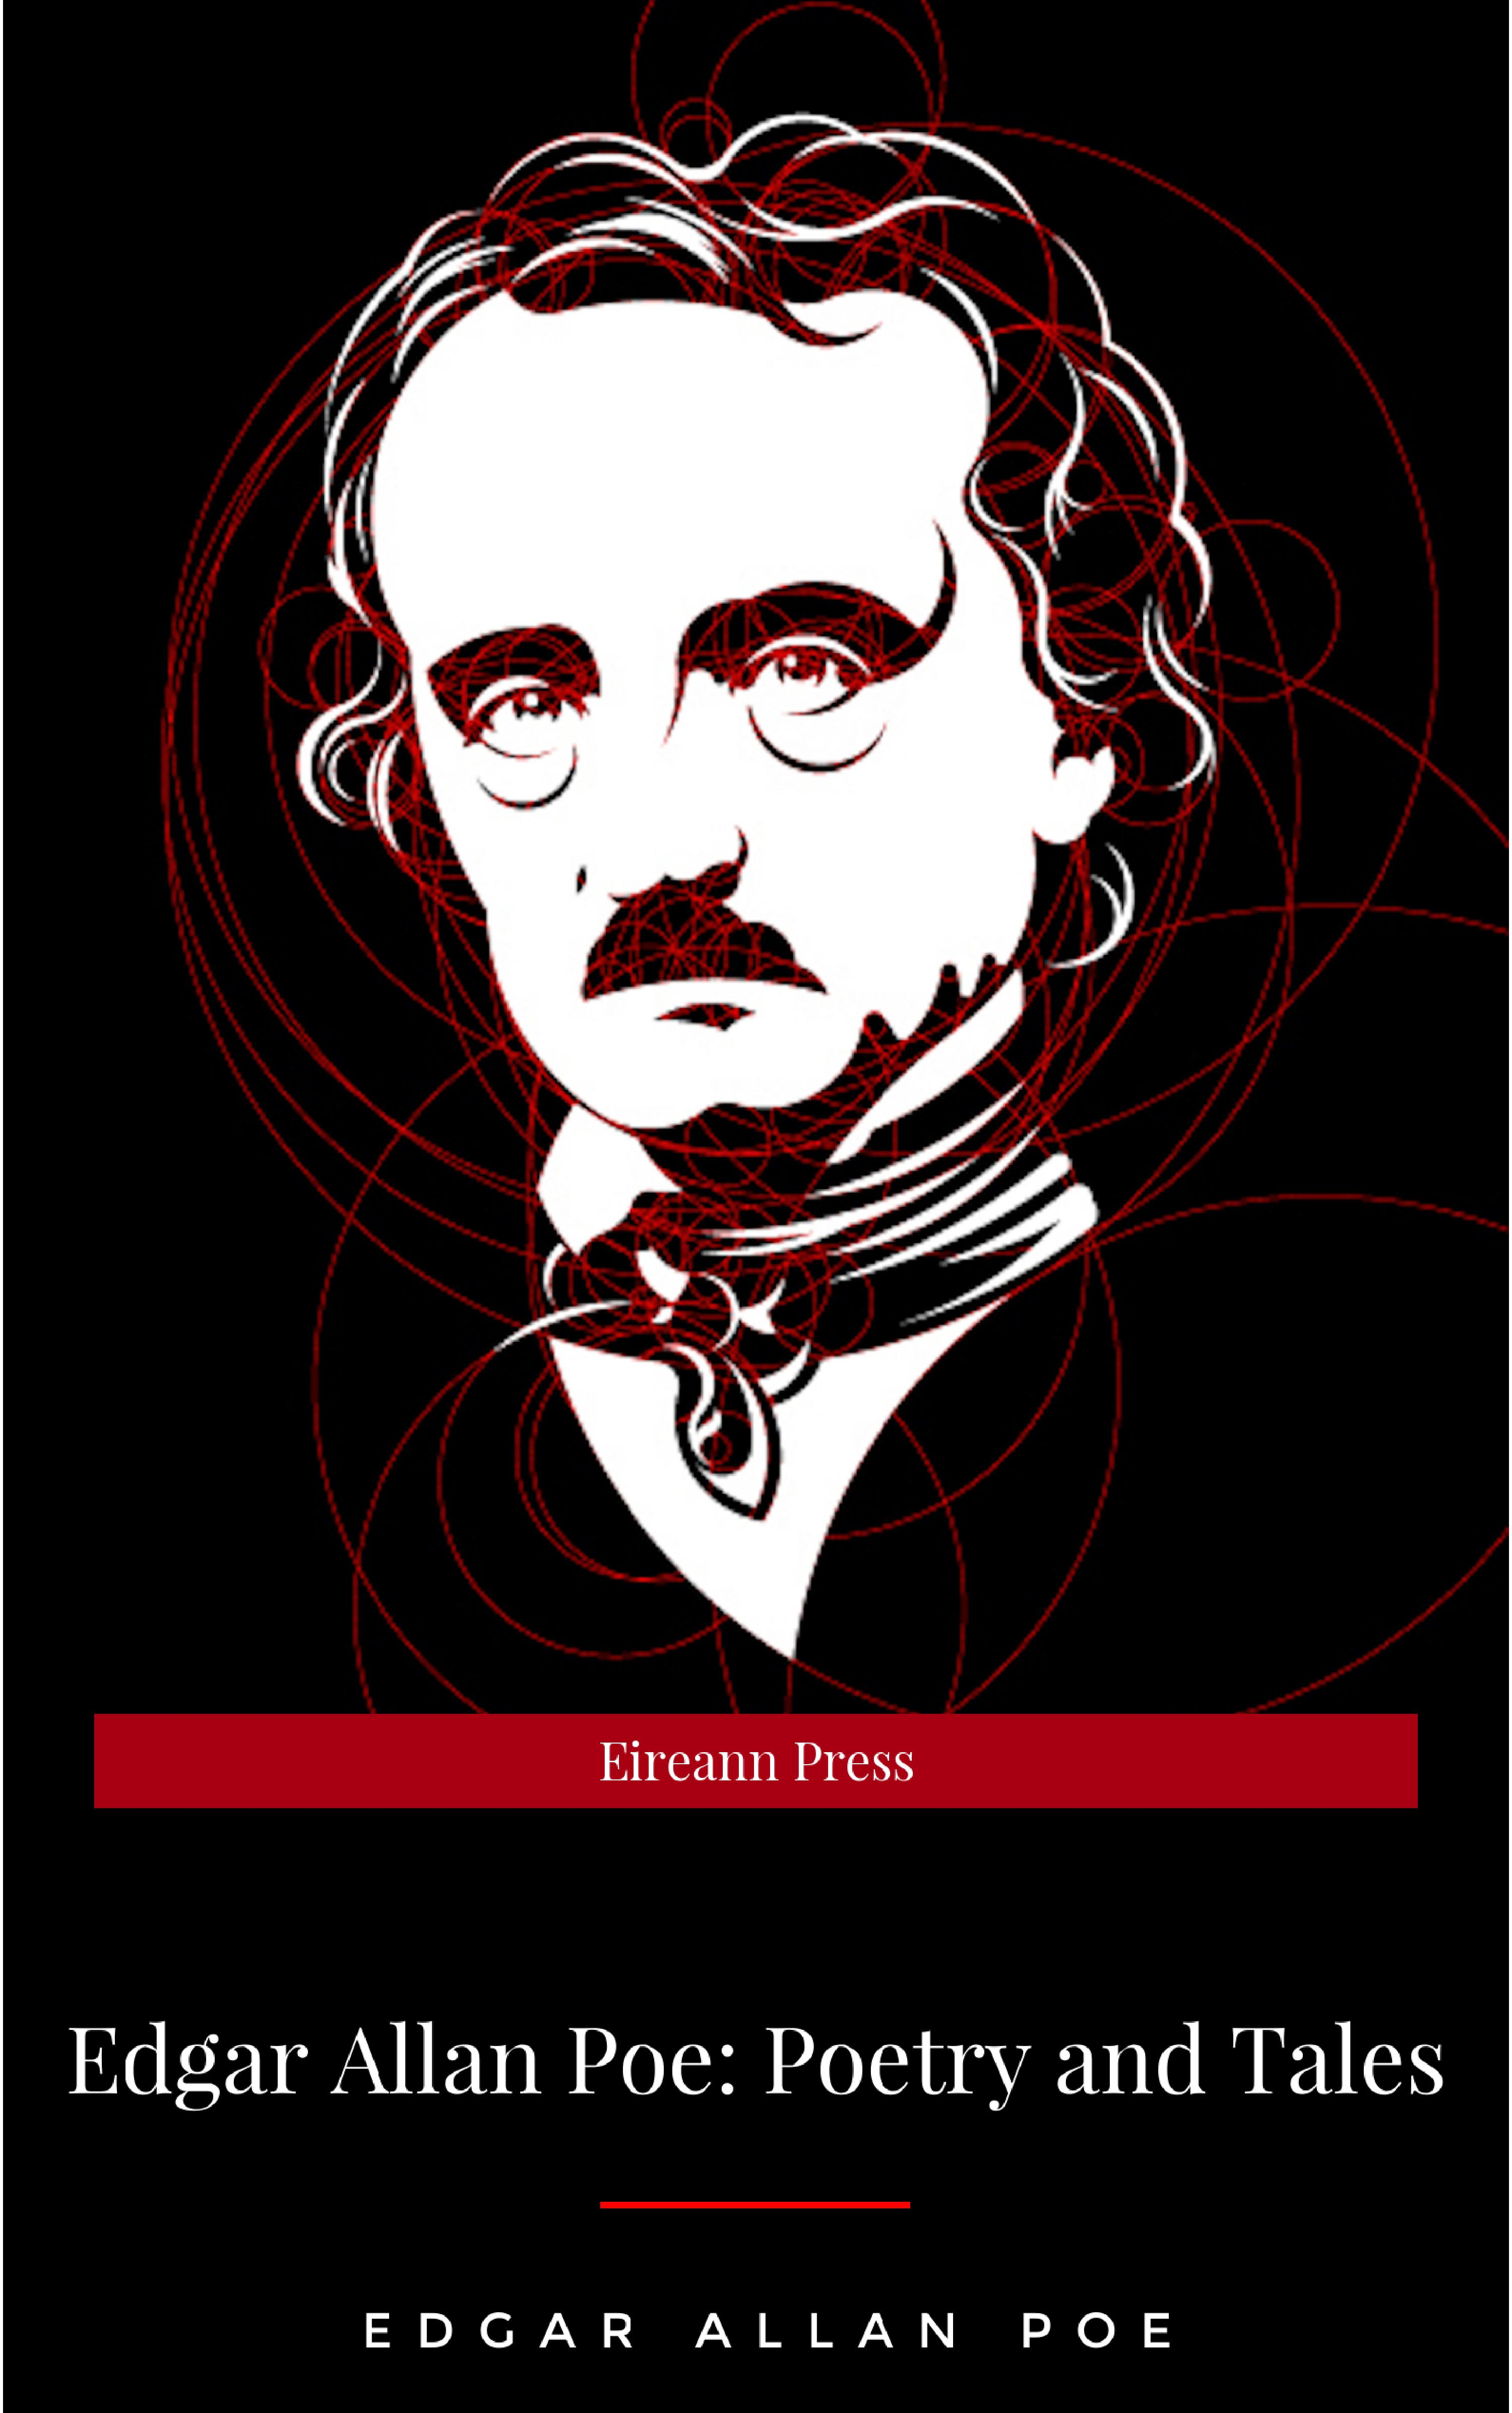 edgar allan poe poetry and tales loa 19